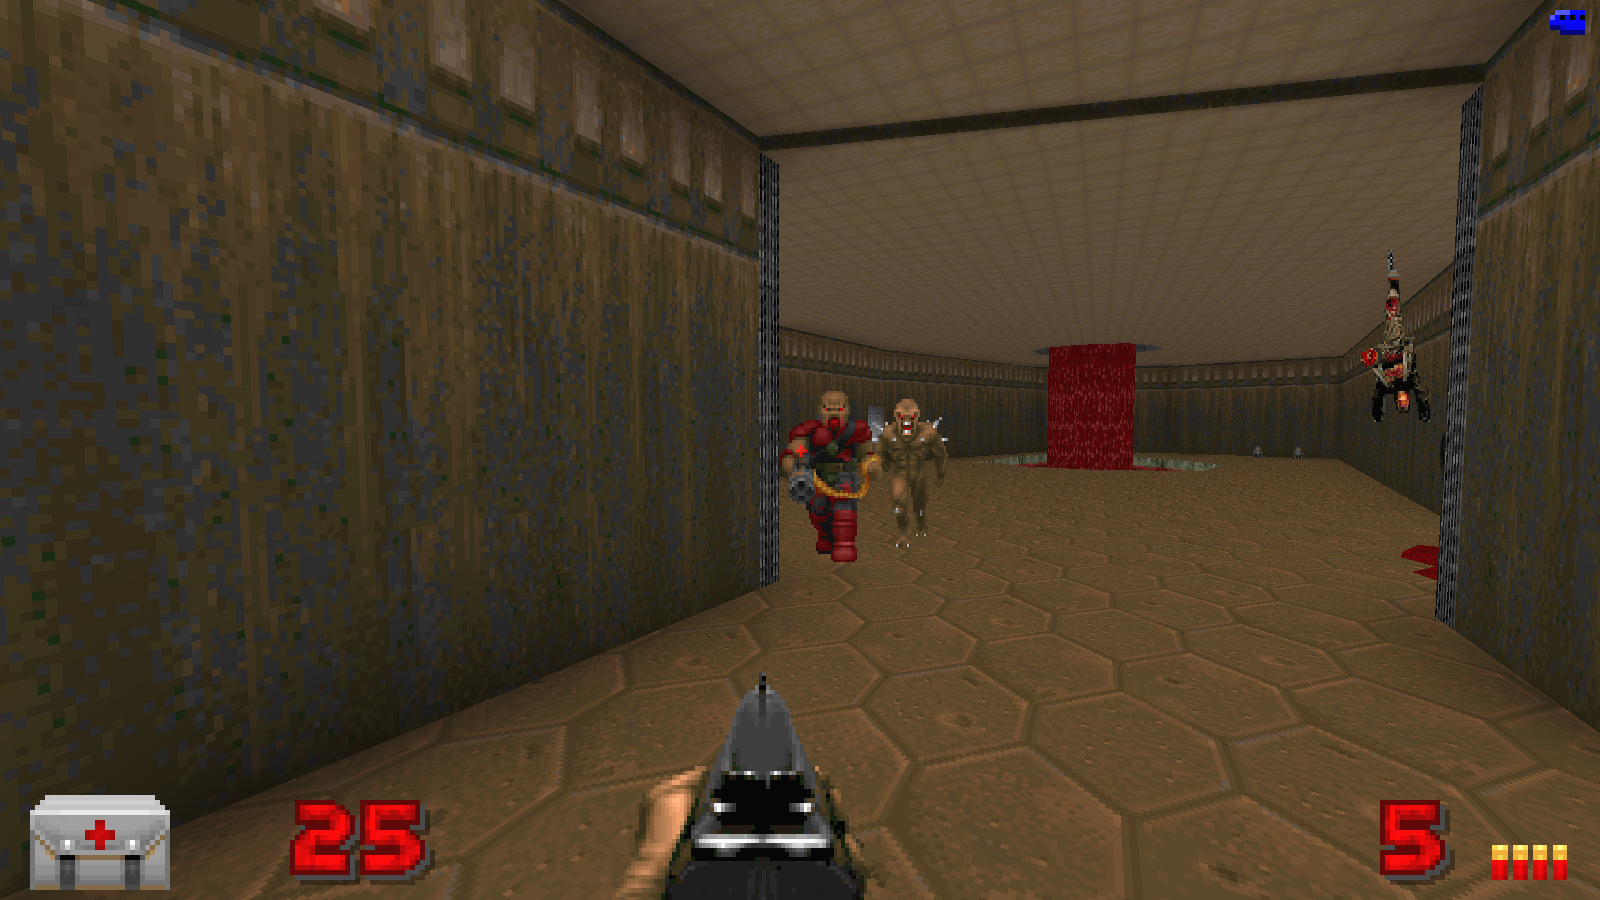 Screenshot_Doom_20190911_131916.png.6e3c7c10e6863f16b07e369bb88495e9.png